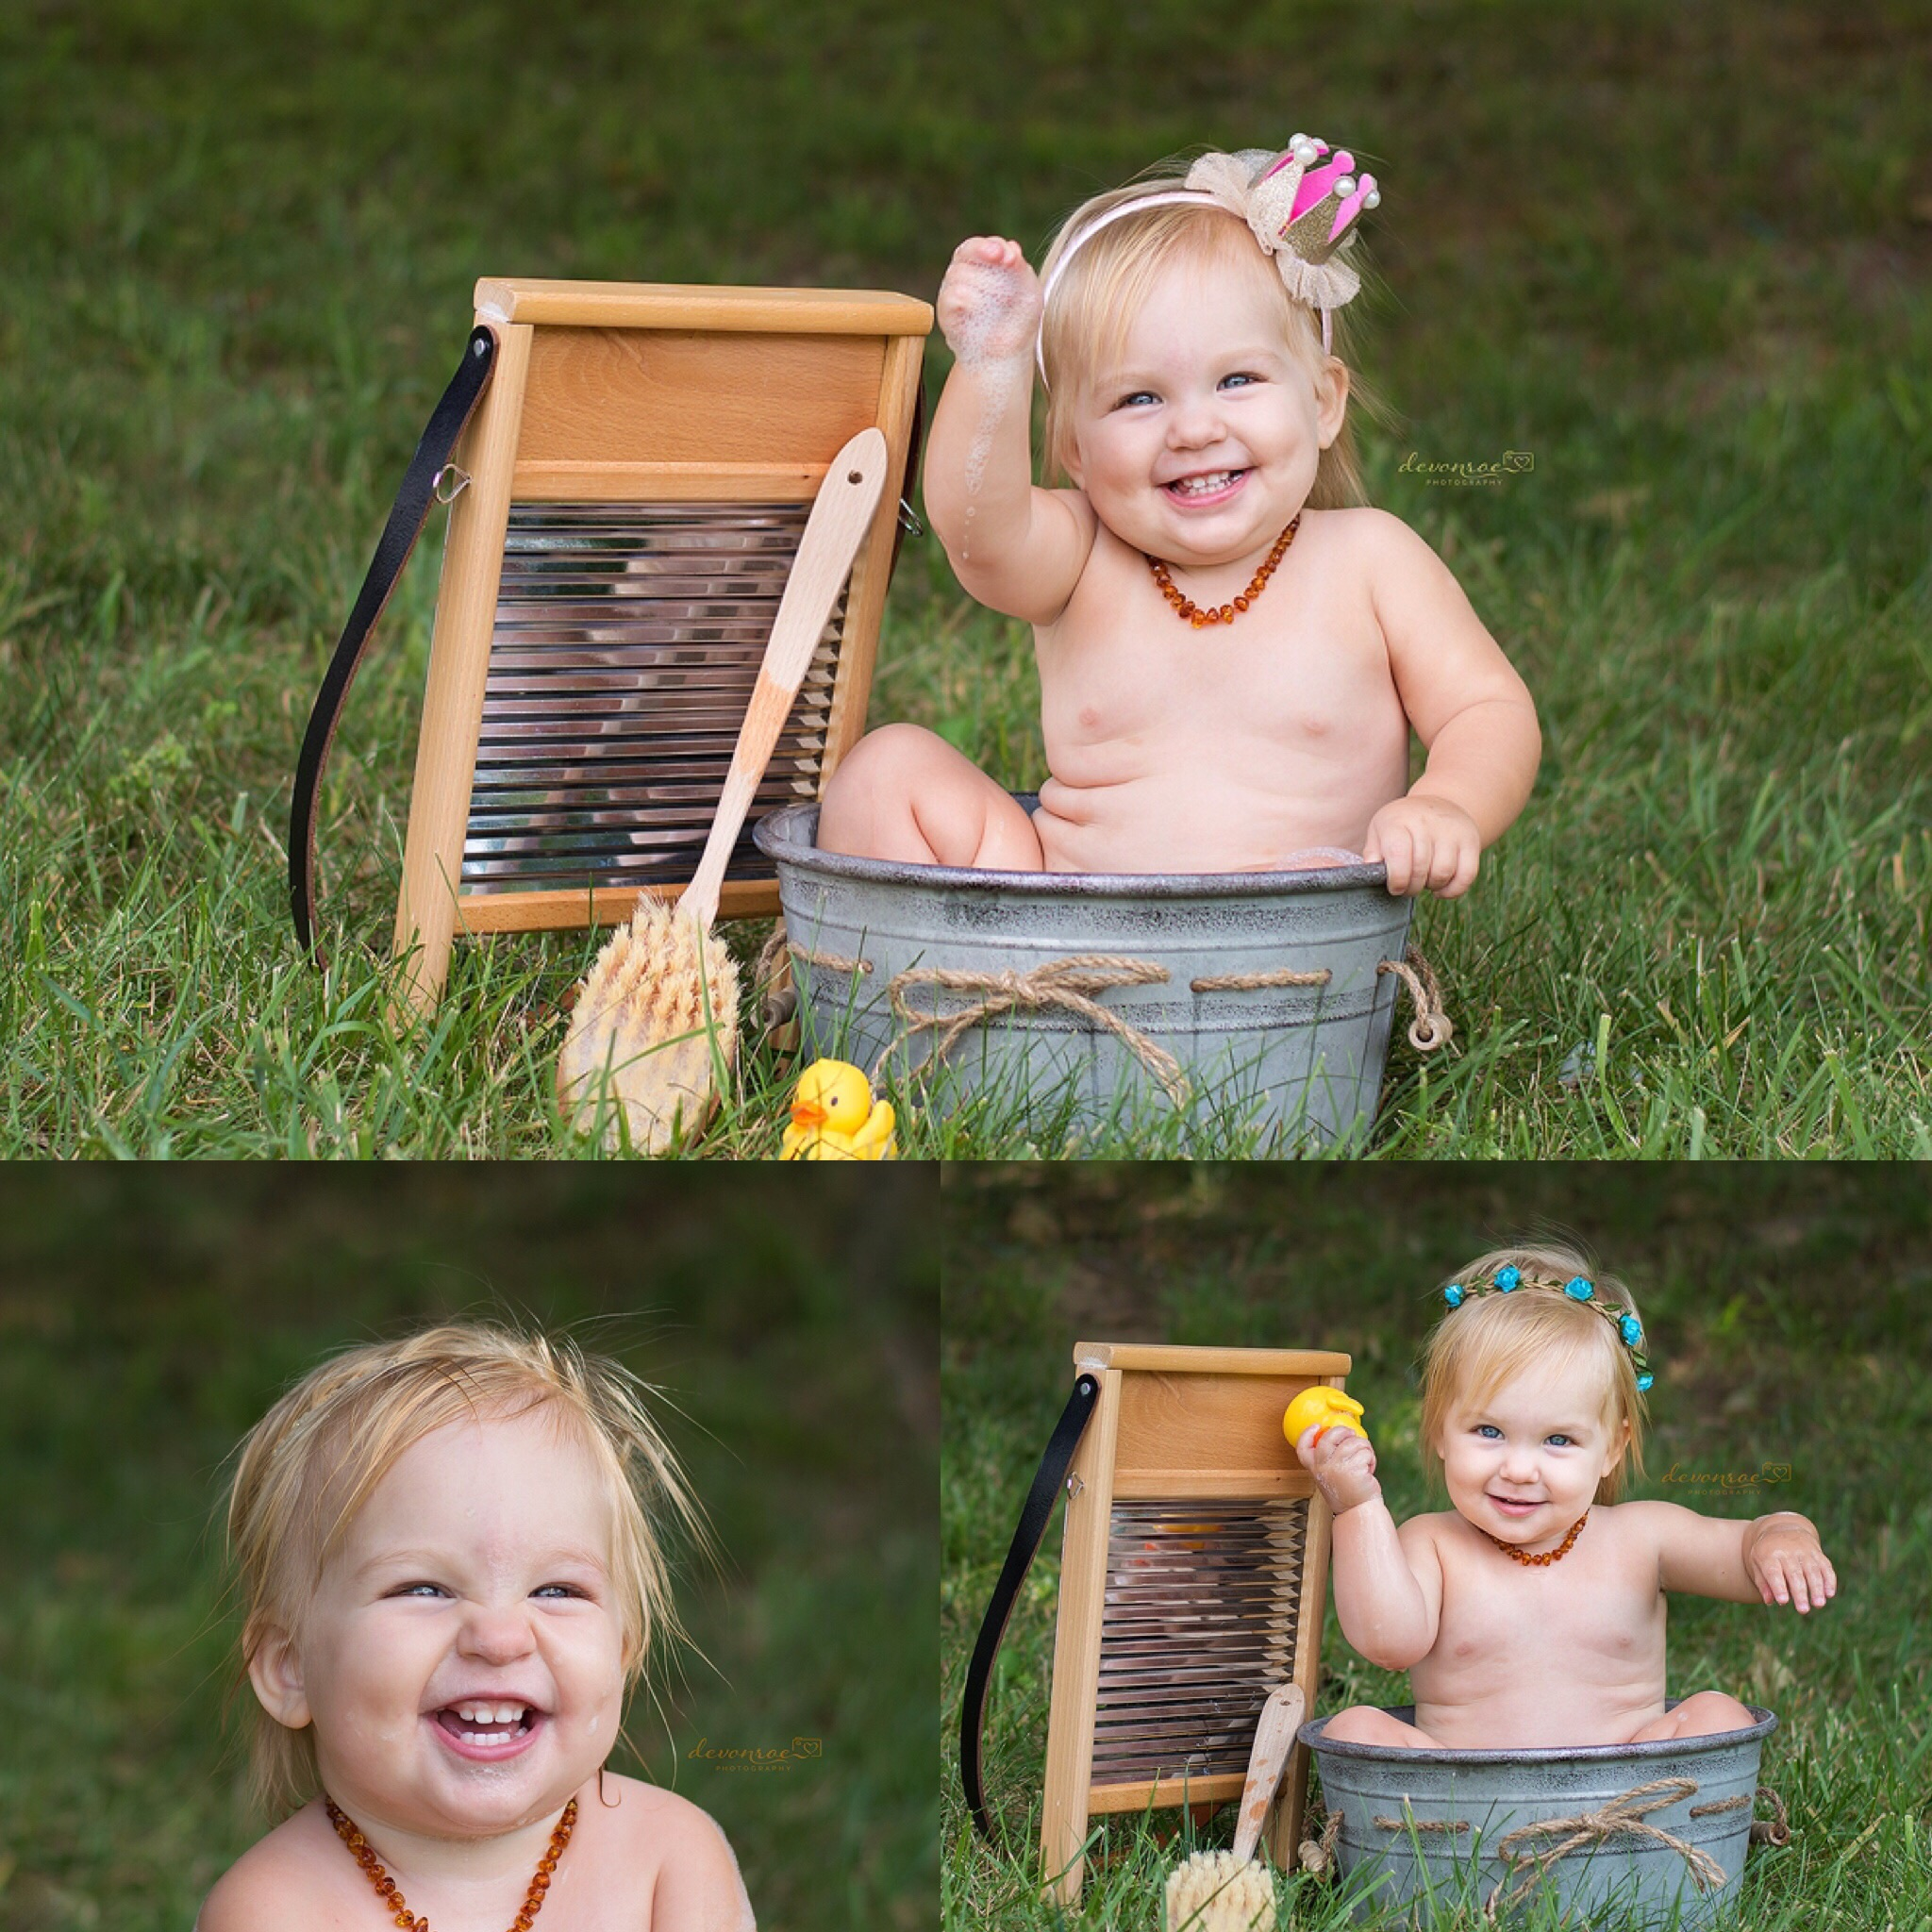 Little ones love water and bubbles and we always get such fun smiles!